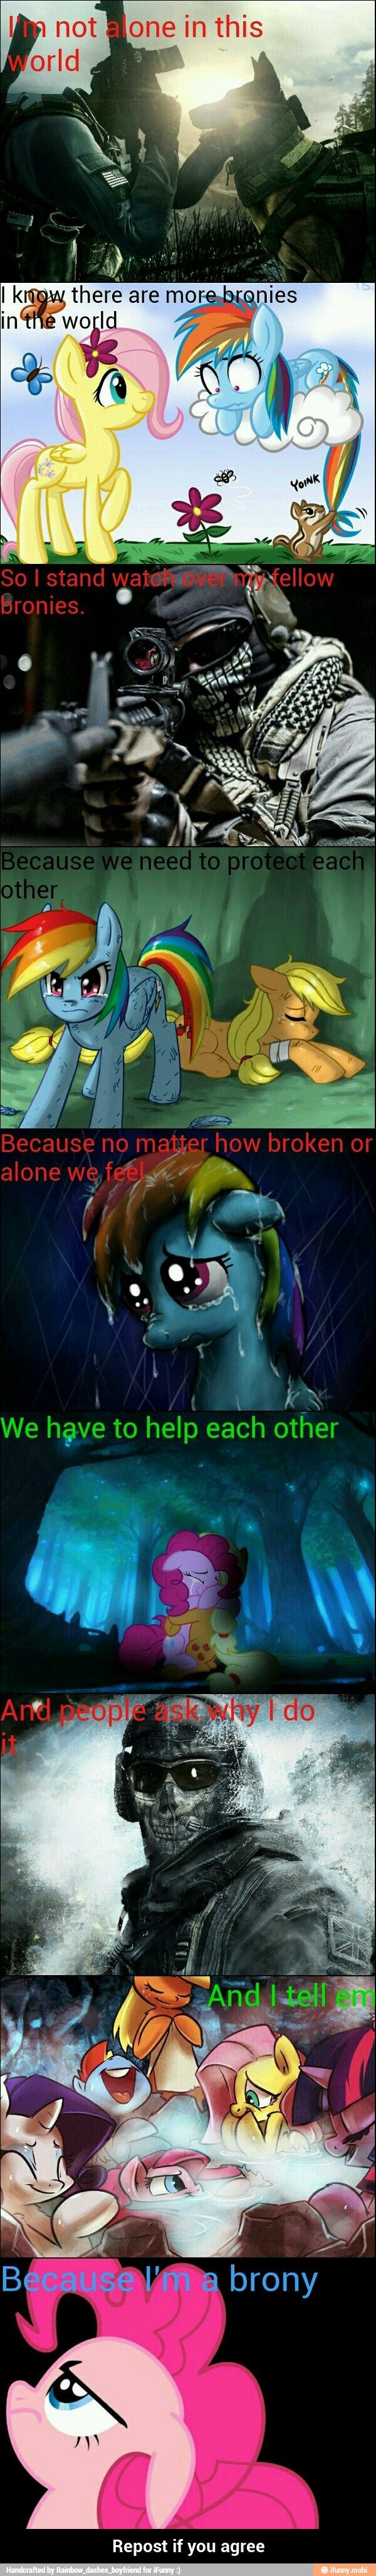 My Little Pony: Friendship Is Magic Rankings & Opinions